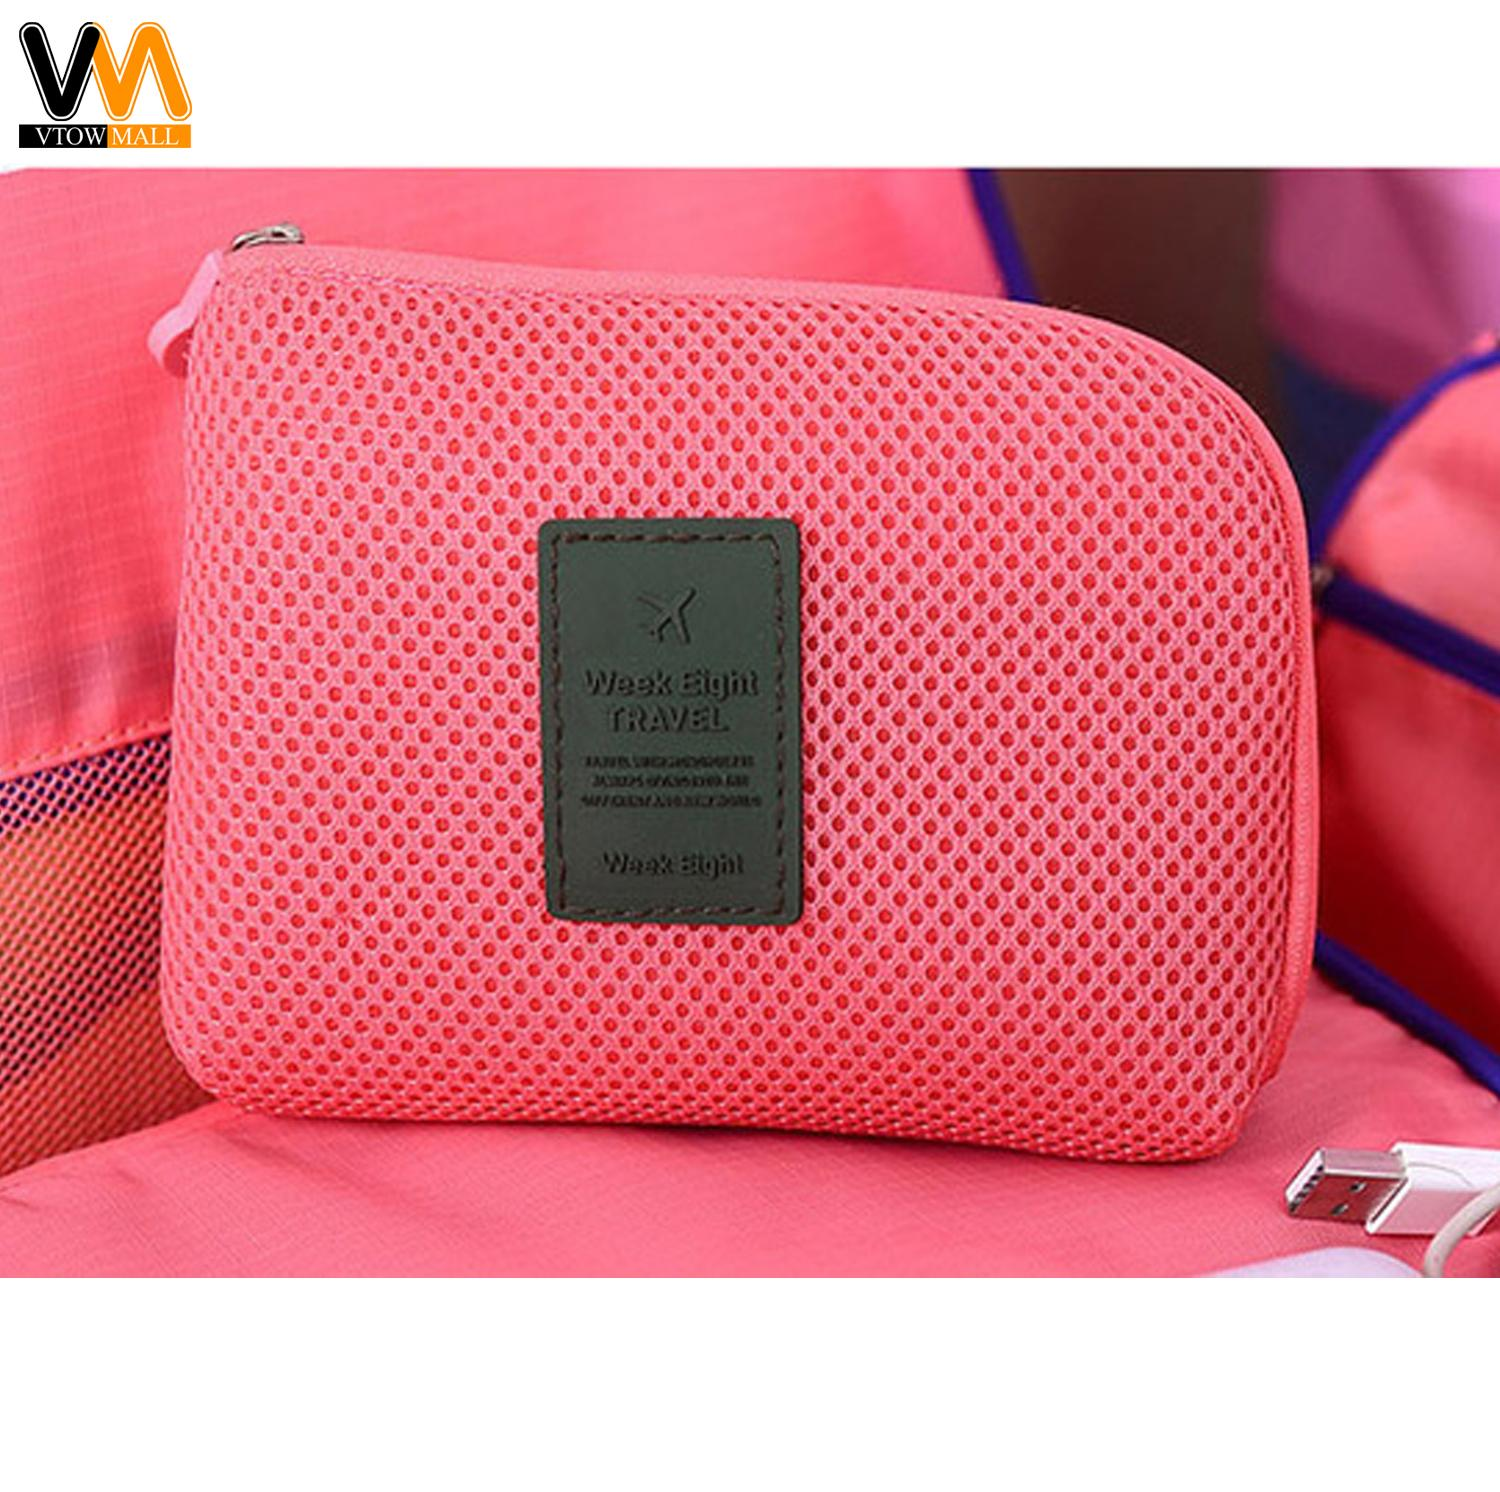 7db4b1cb86 Travel Gadget Organizer Cable cord Charger Pouch (Pink)